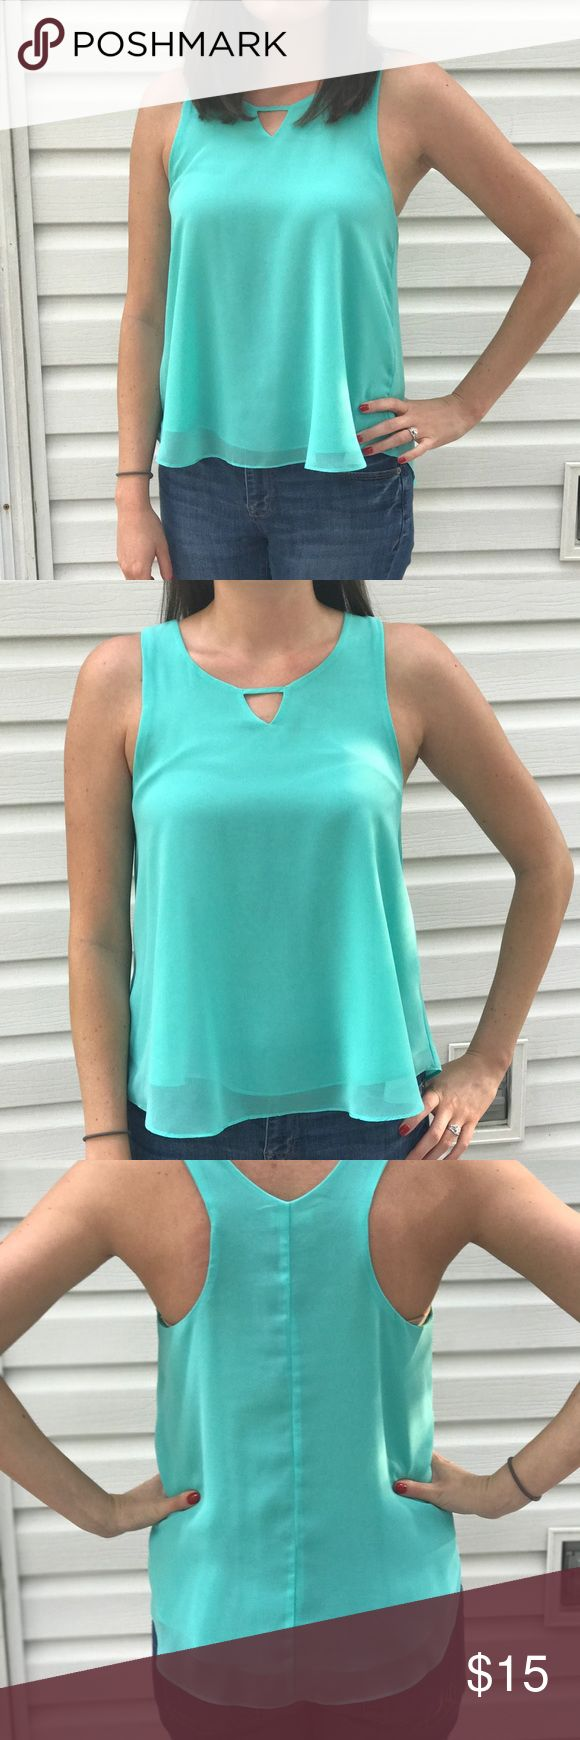 """BEAUTIFUL mint green flowy tank The color of this tank is to DIE FOR! Super comfortable and cute tank top, perfect for casual or dressy looks. Worn less than 5 times. Comes from a non-smoking and pet free home. LOVE this top, I just never wear it. I'm 5' 7"""" and 135 lbs. for size reference. 👗 e & m Tops Tank Tops"""